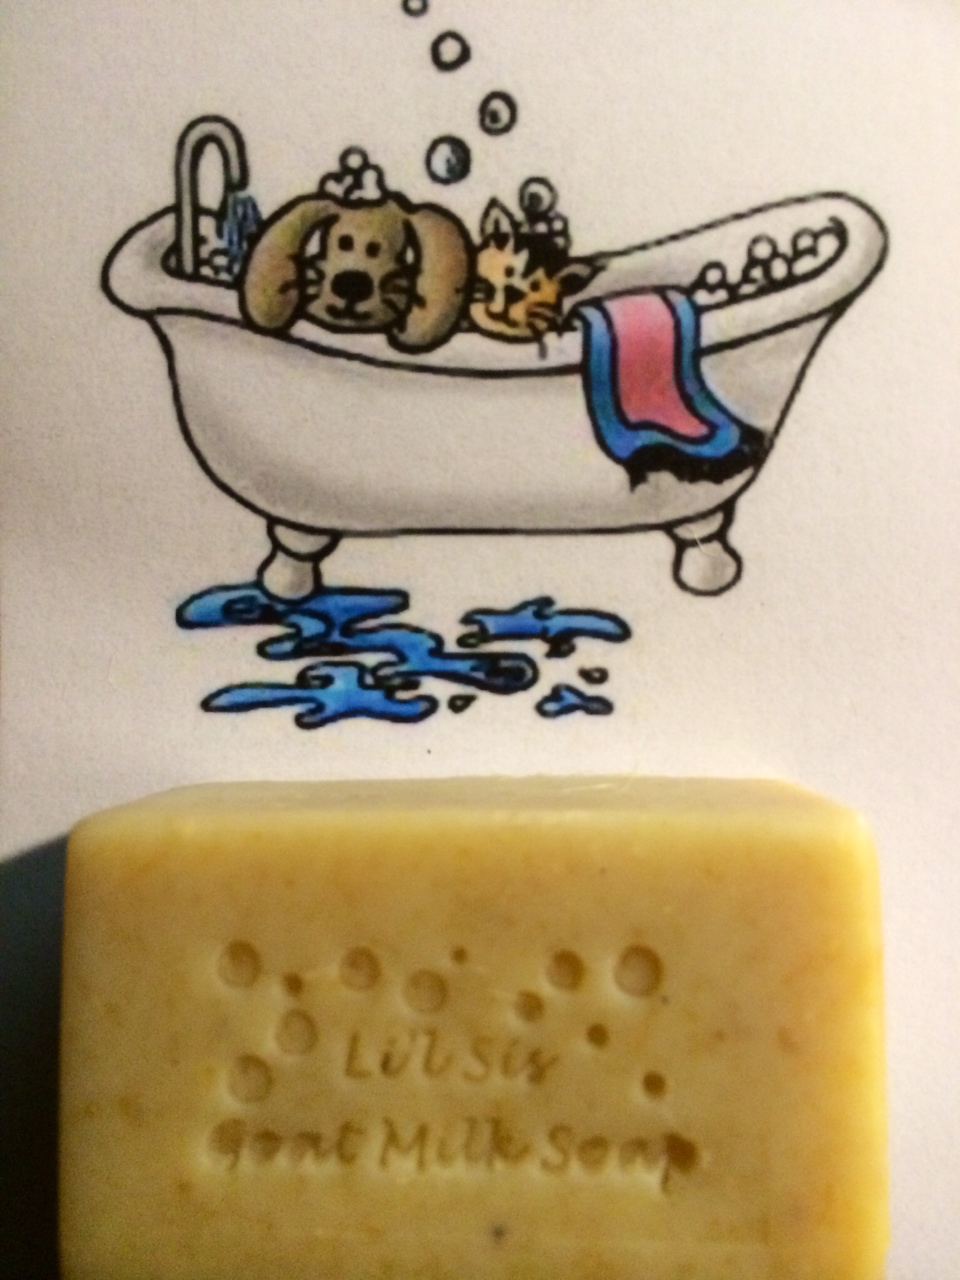 Li'l Sis Eco Friendly Pet Soap